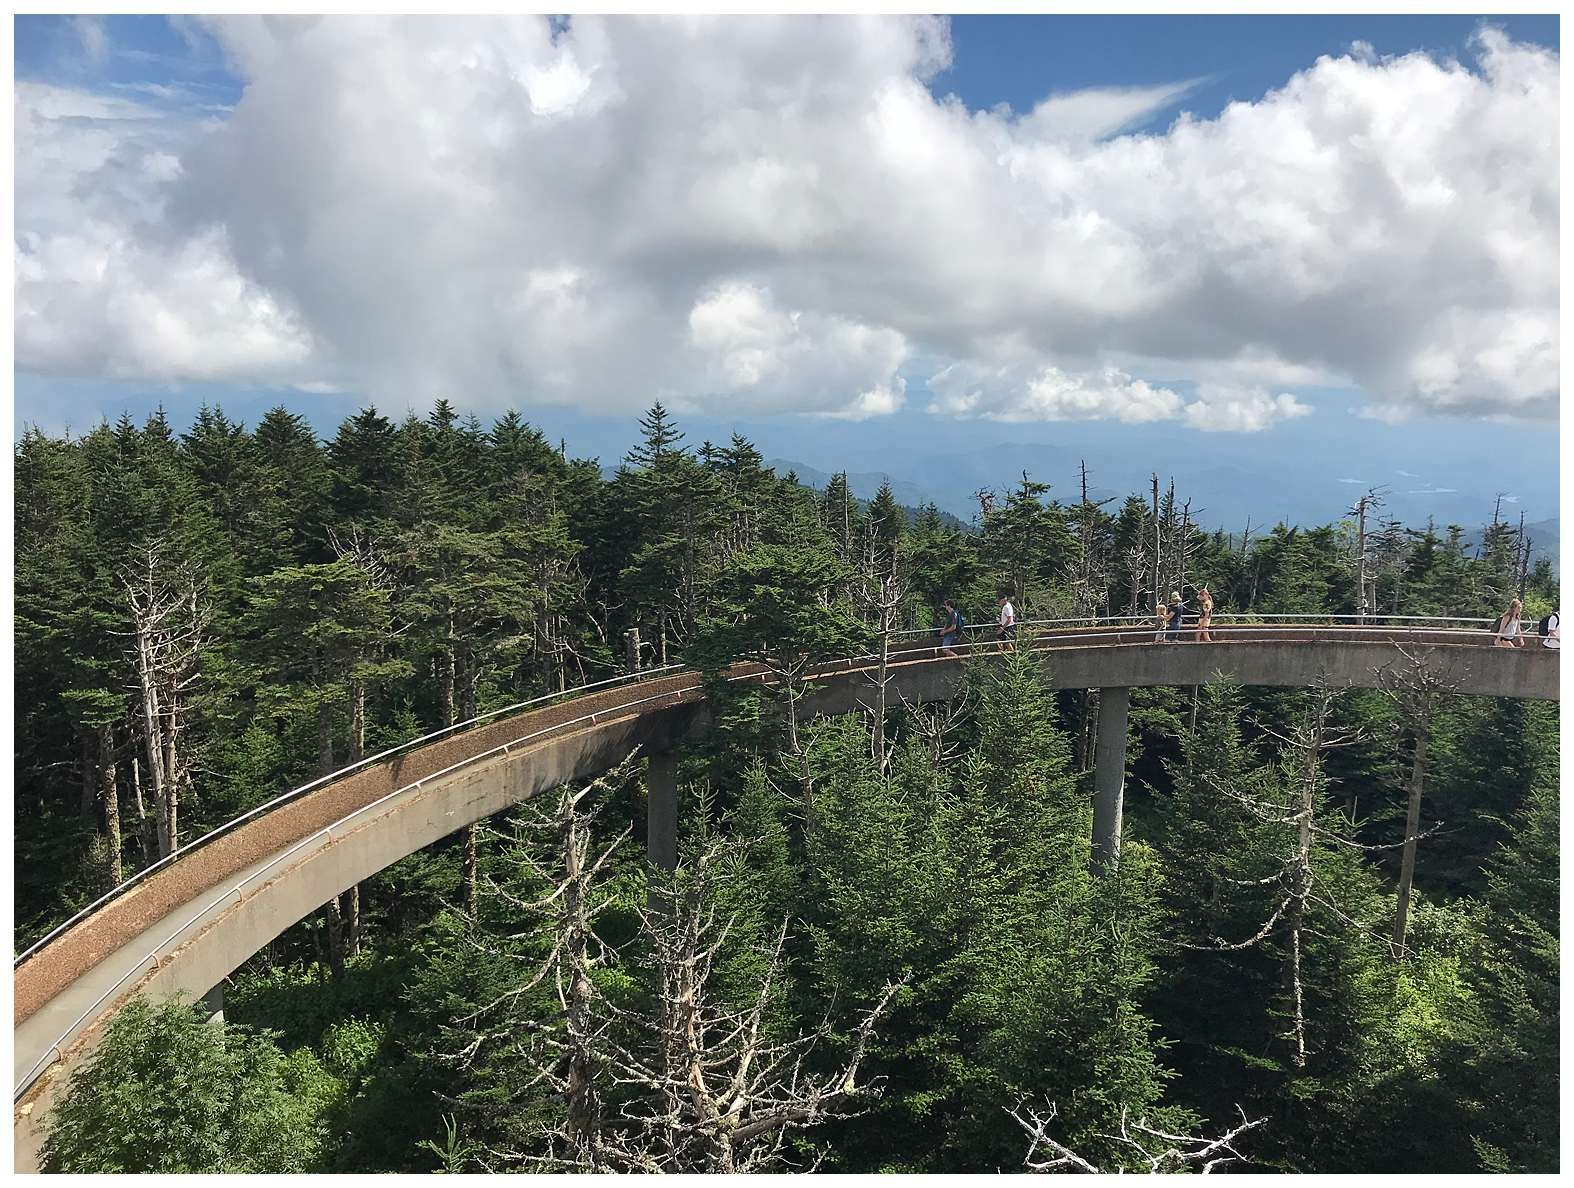 Walkway view. At 6,643 feet, Clingmans Dome is the highest point in the Great Smoky Mountains National Park.